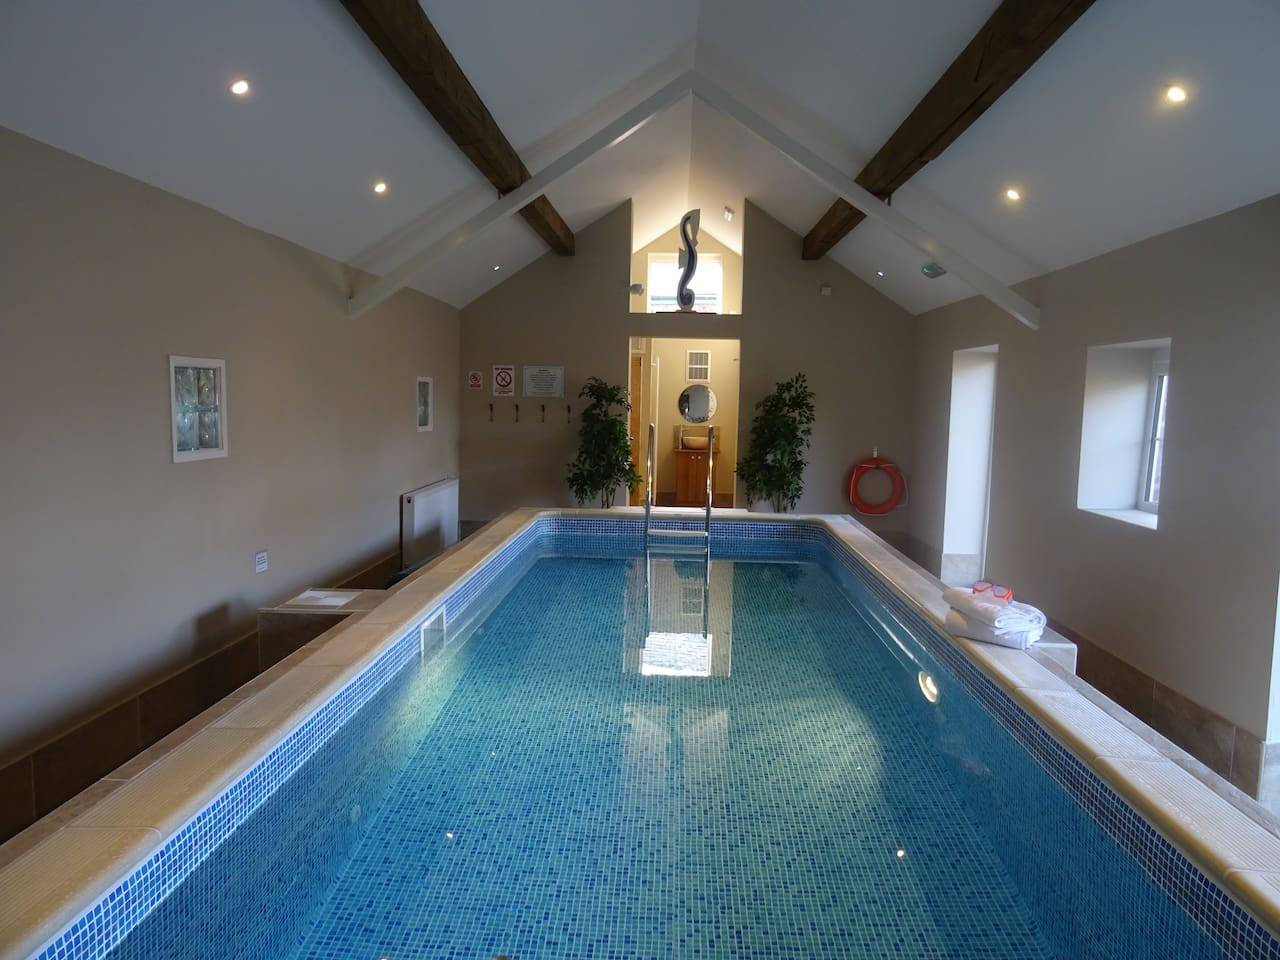 Indoor pool with changing rooms.